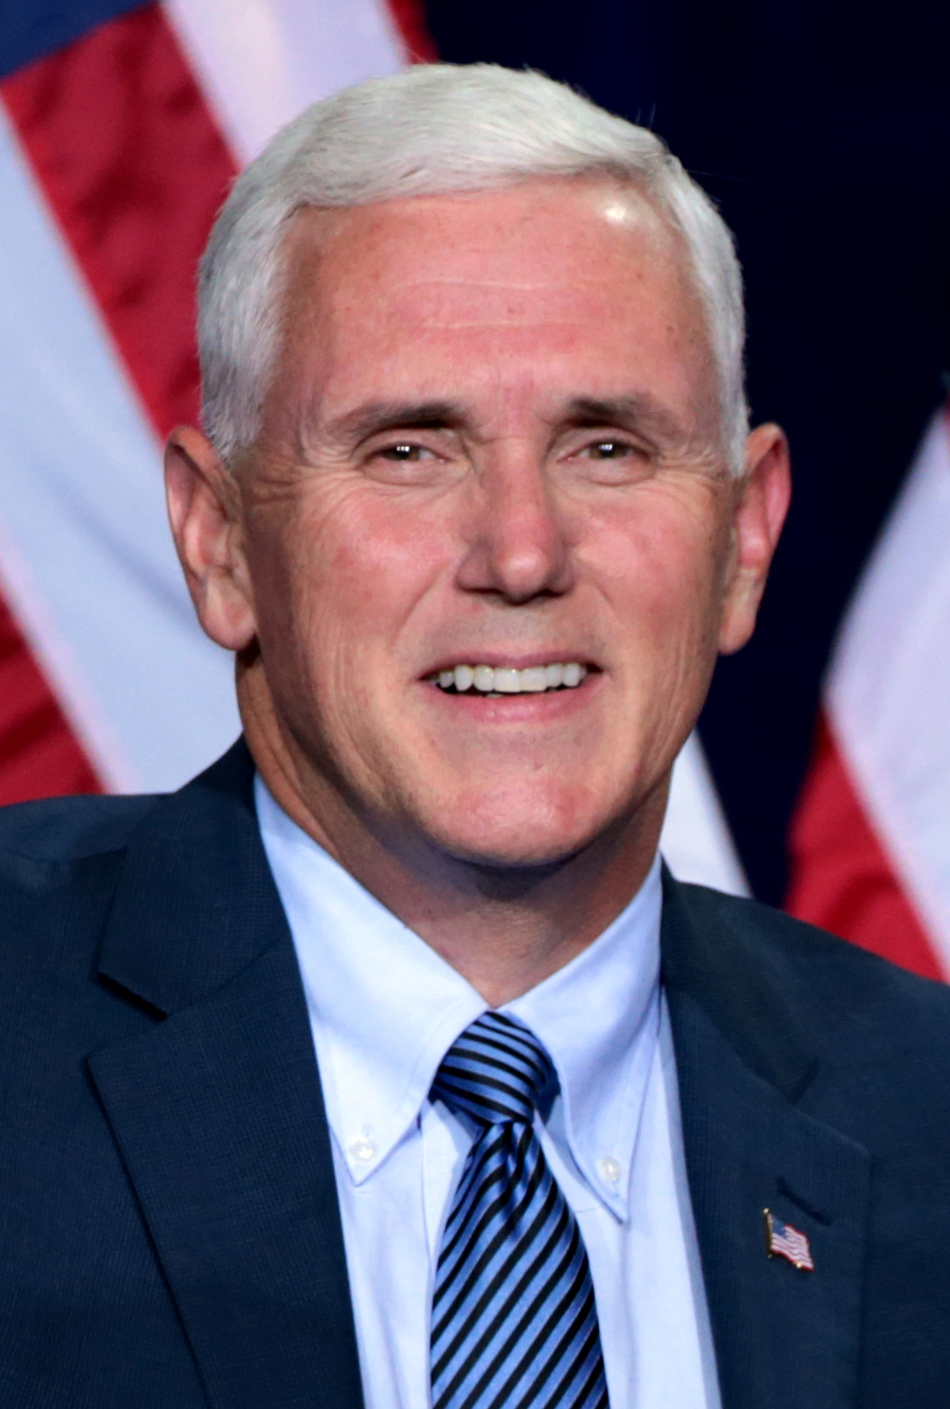 Mike Pence earned a 0,24 million dollar salary - leaving the net worth at 1 million in 2017